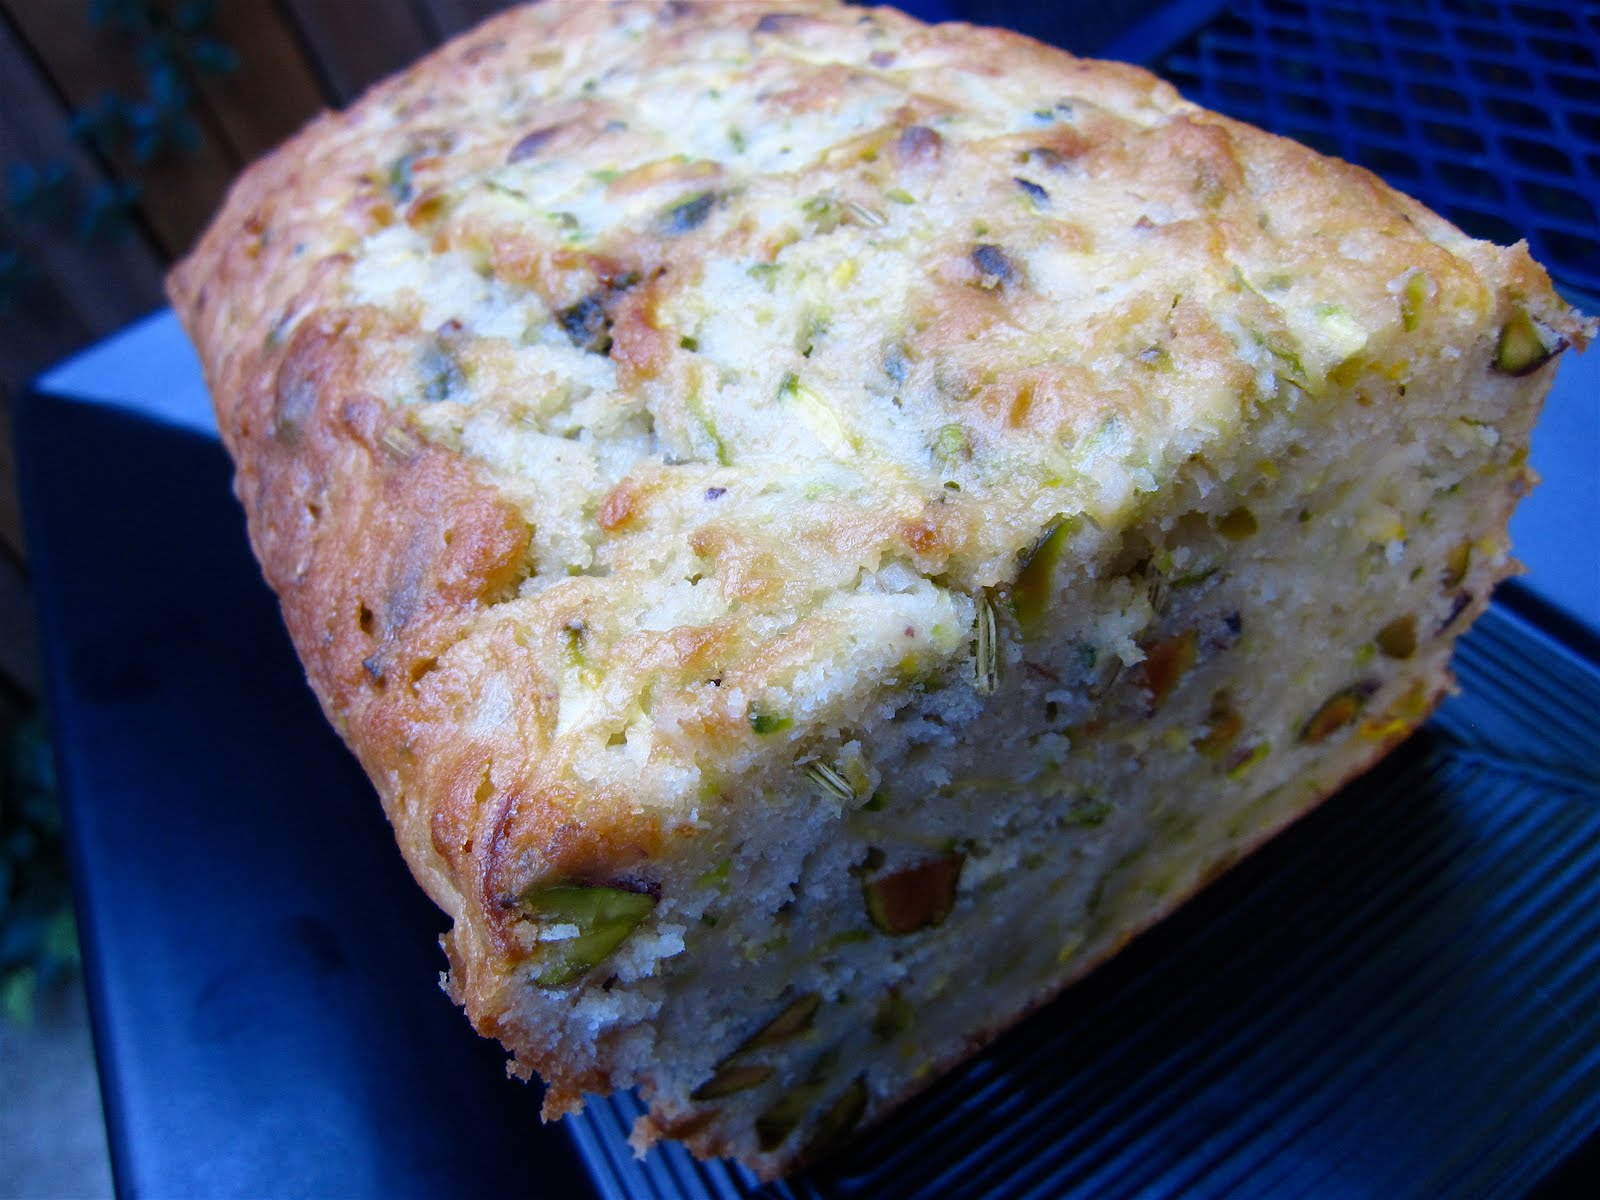 Consumed: My Culinary Adventure: Summer Squash Cake